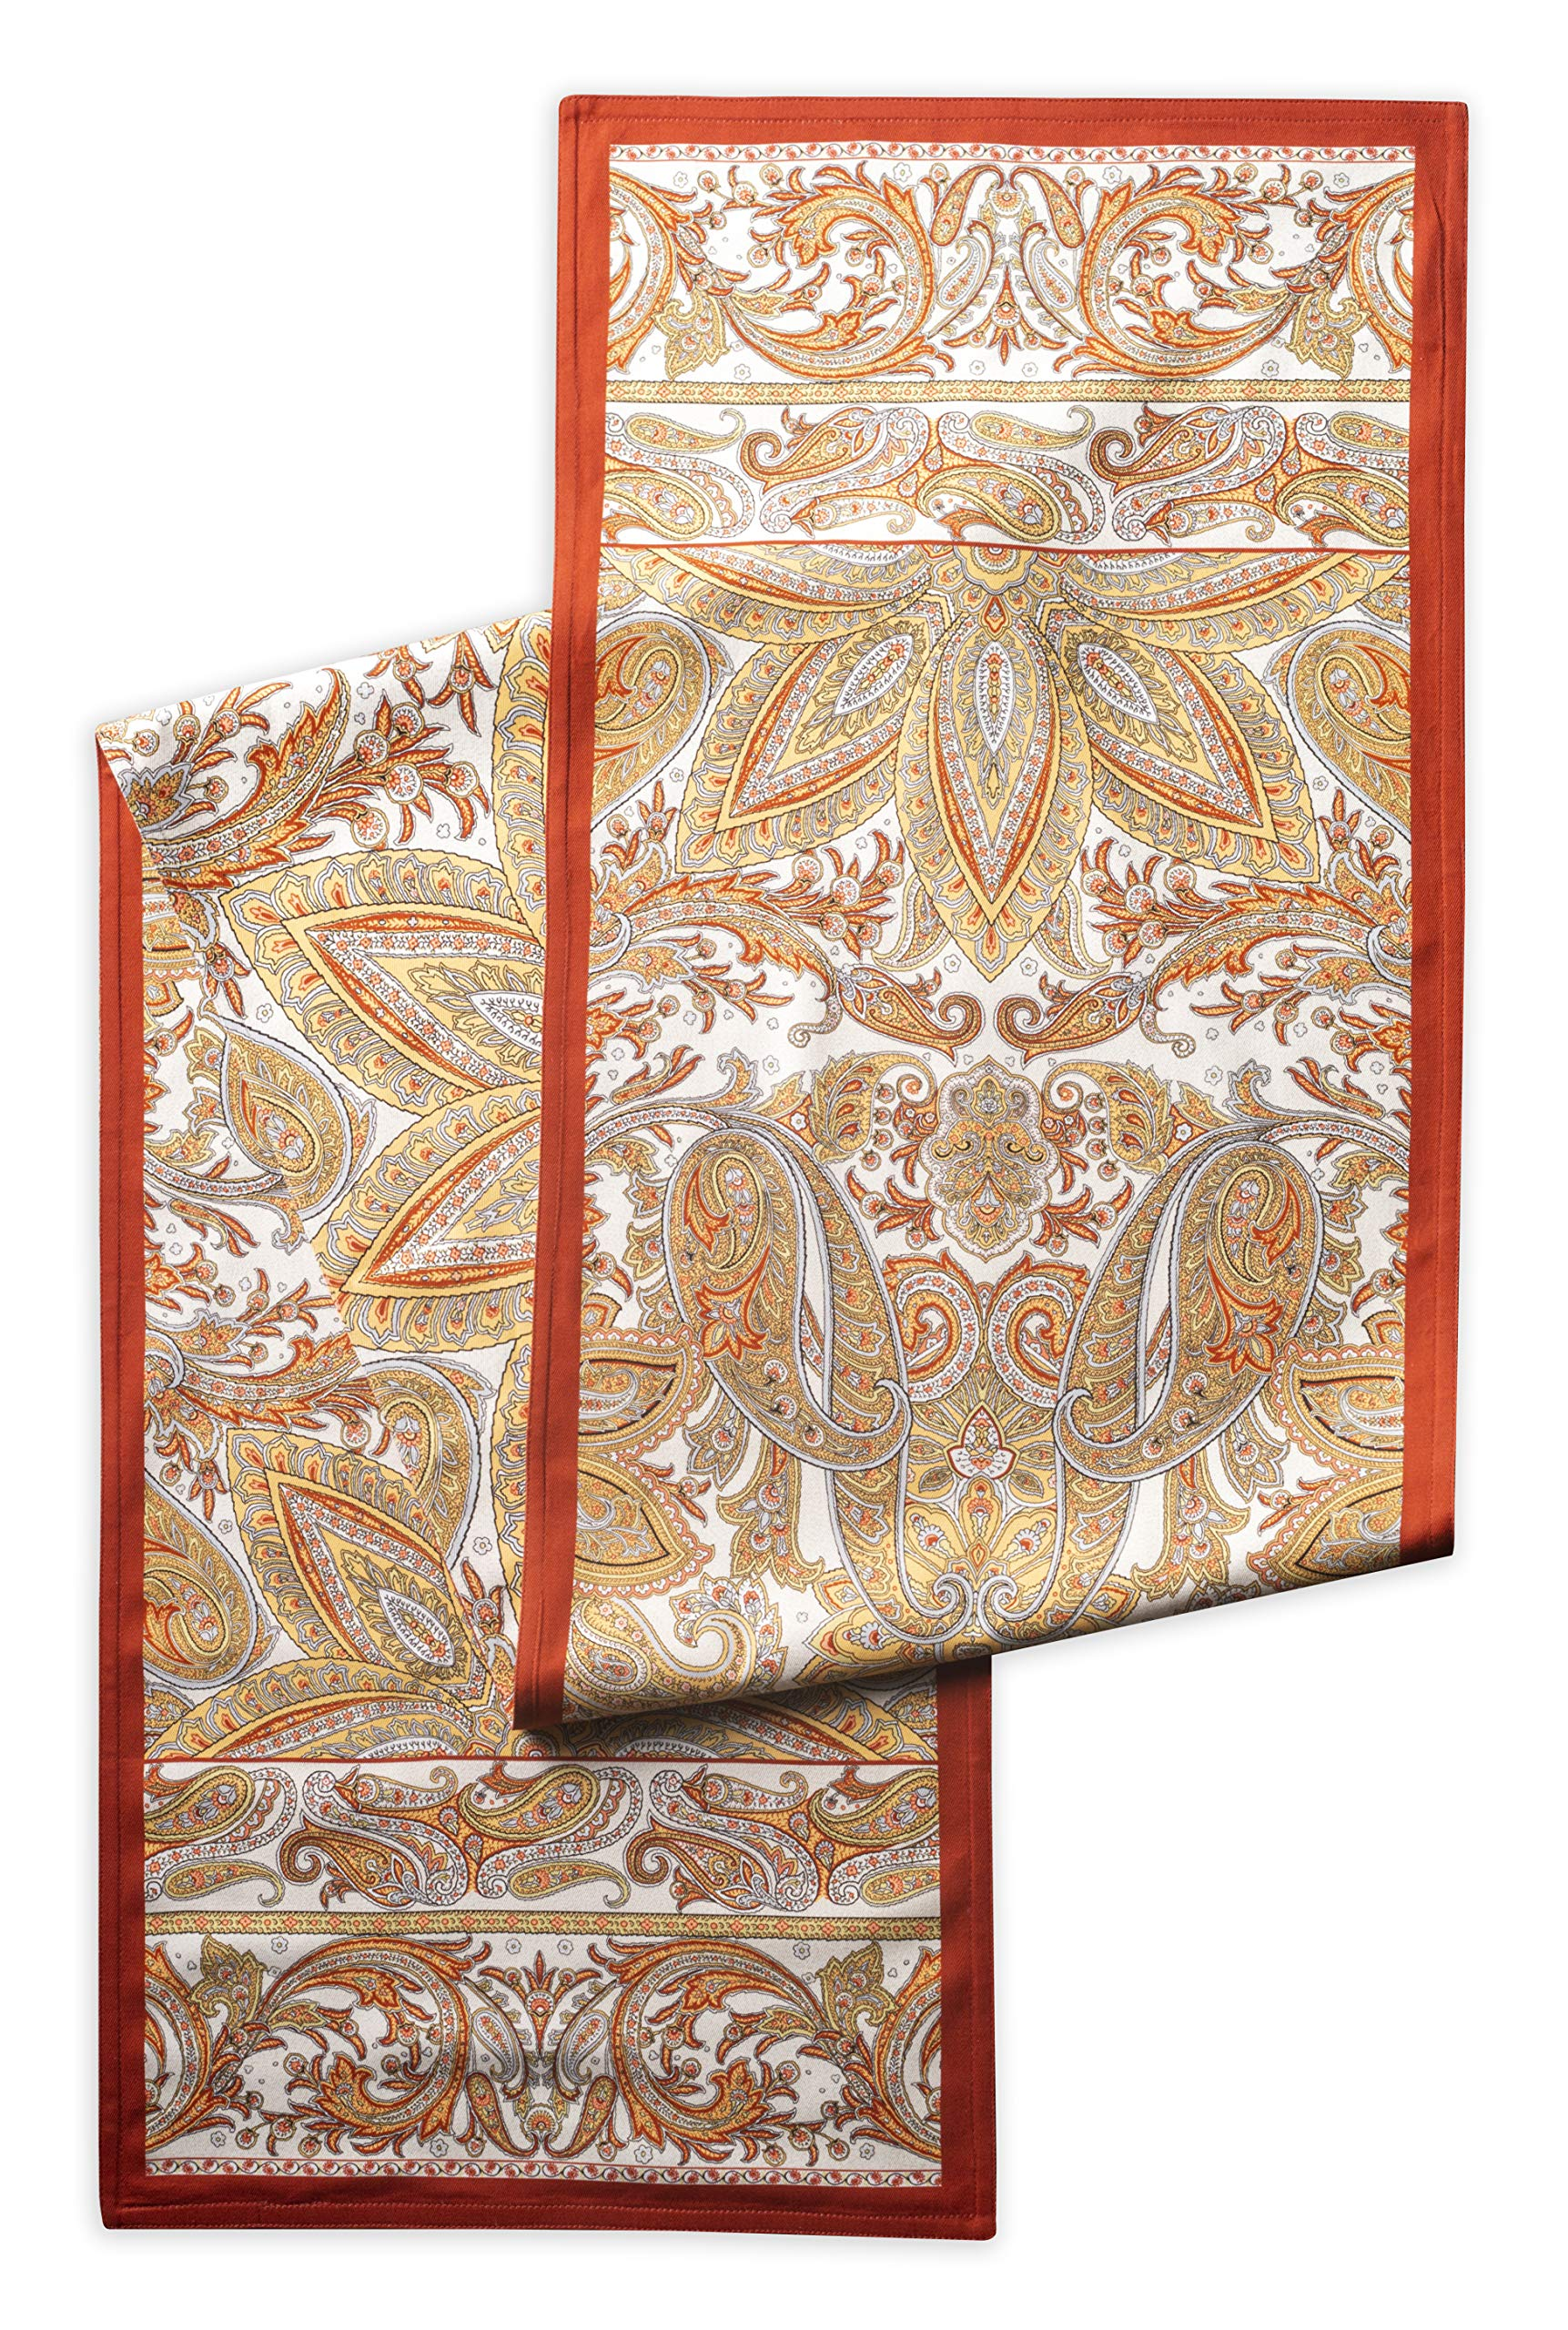 Maison d' Hermine Kashmir Paisley 100% Cotton Table Runner 14.5 Inch by 108 Inch